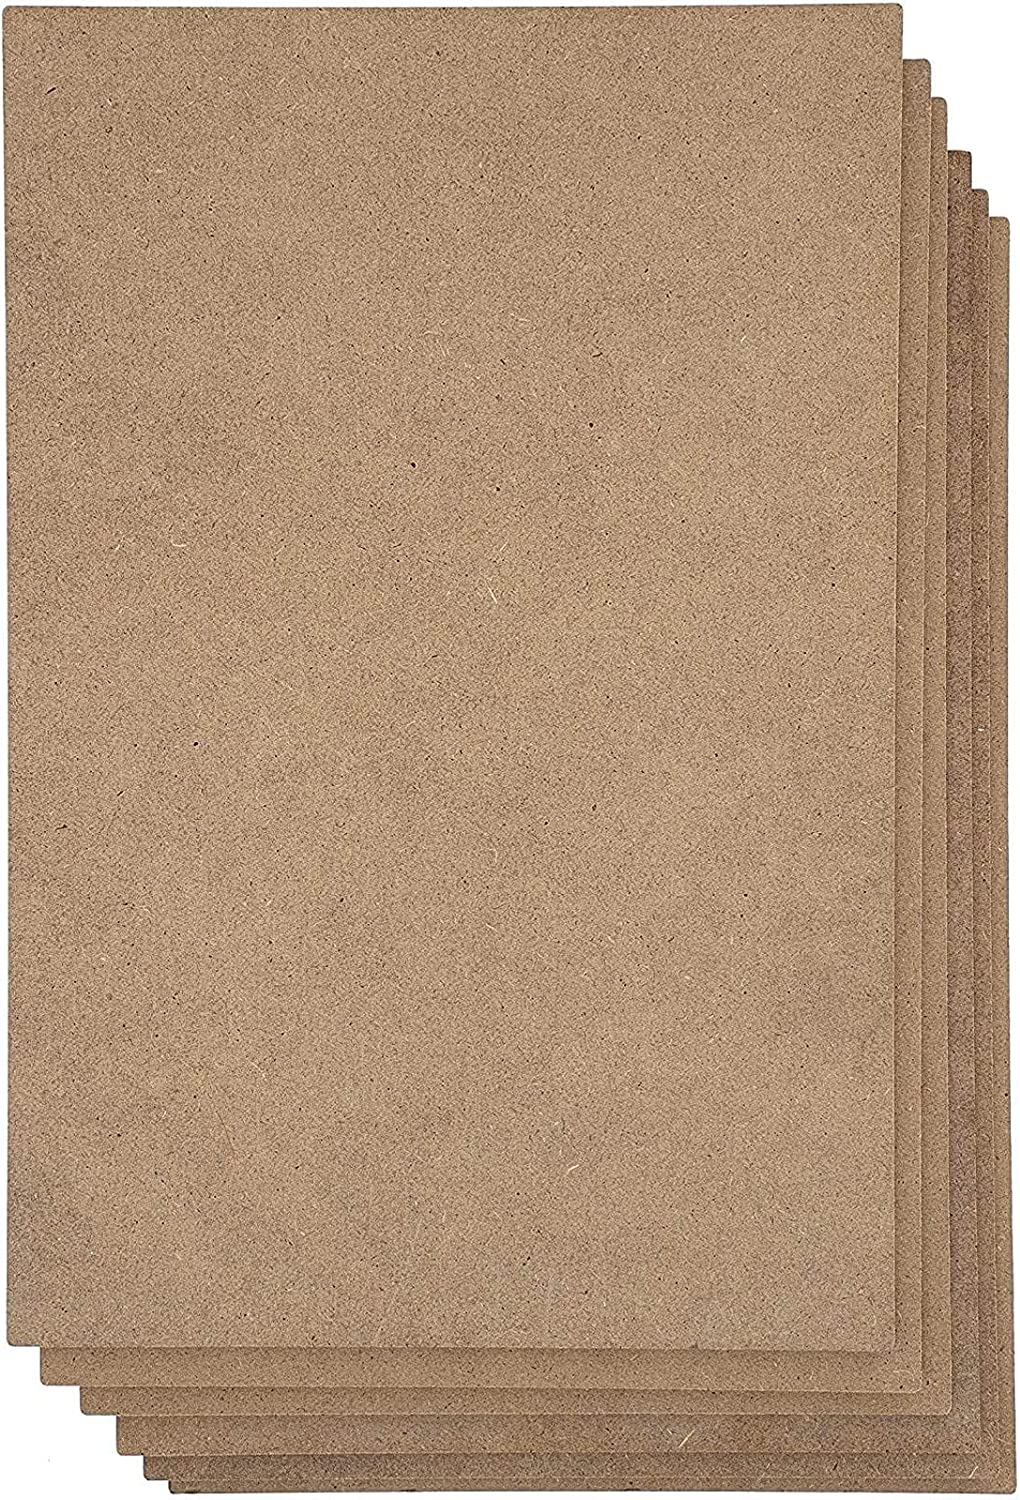 Blank Wood Board Chipboard Sheets for Crafts Award in Pack Super-cheap 11x14 6